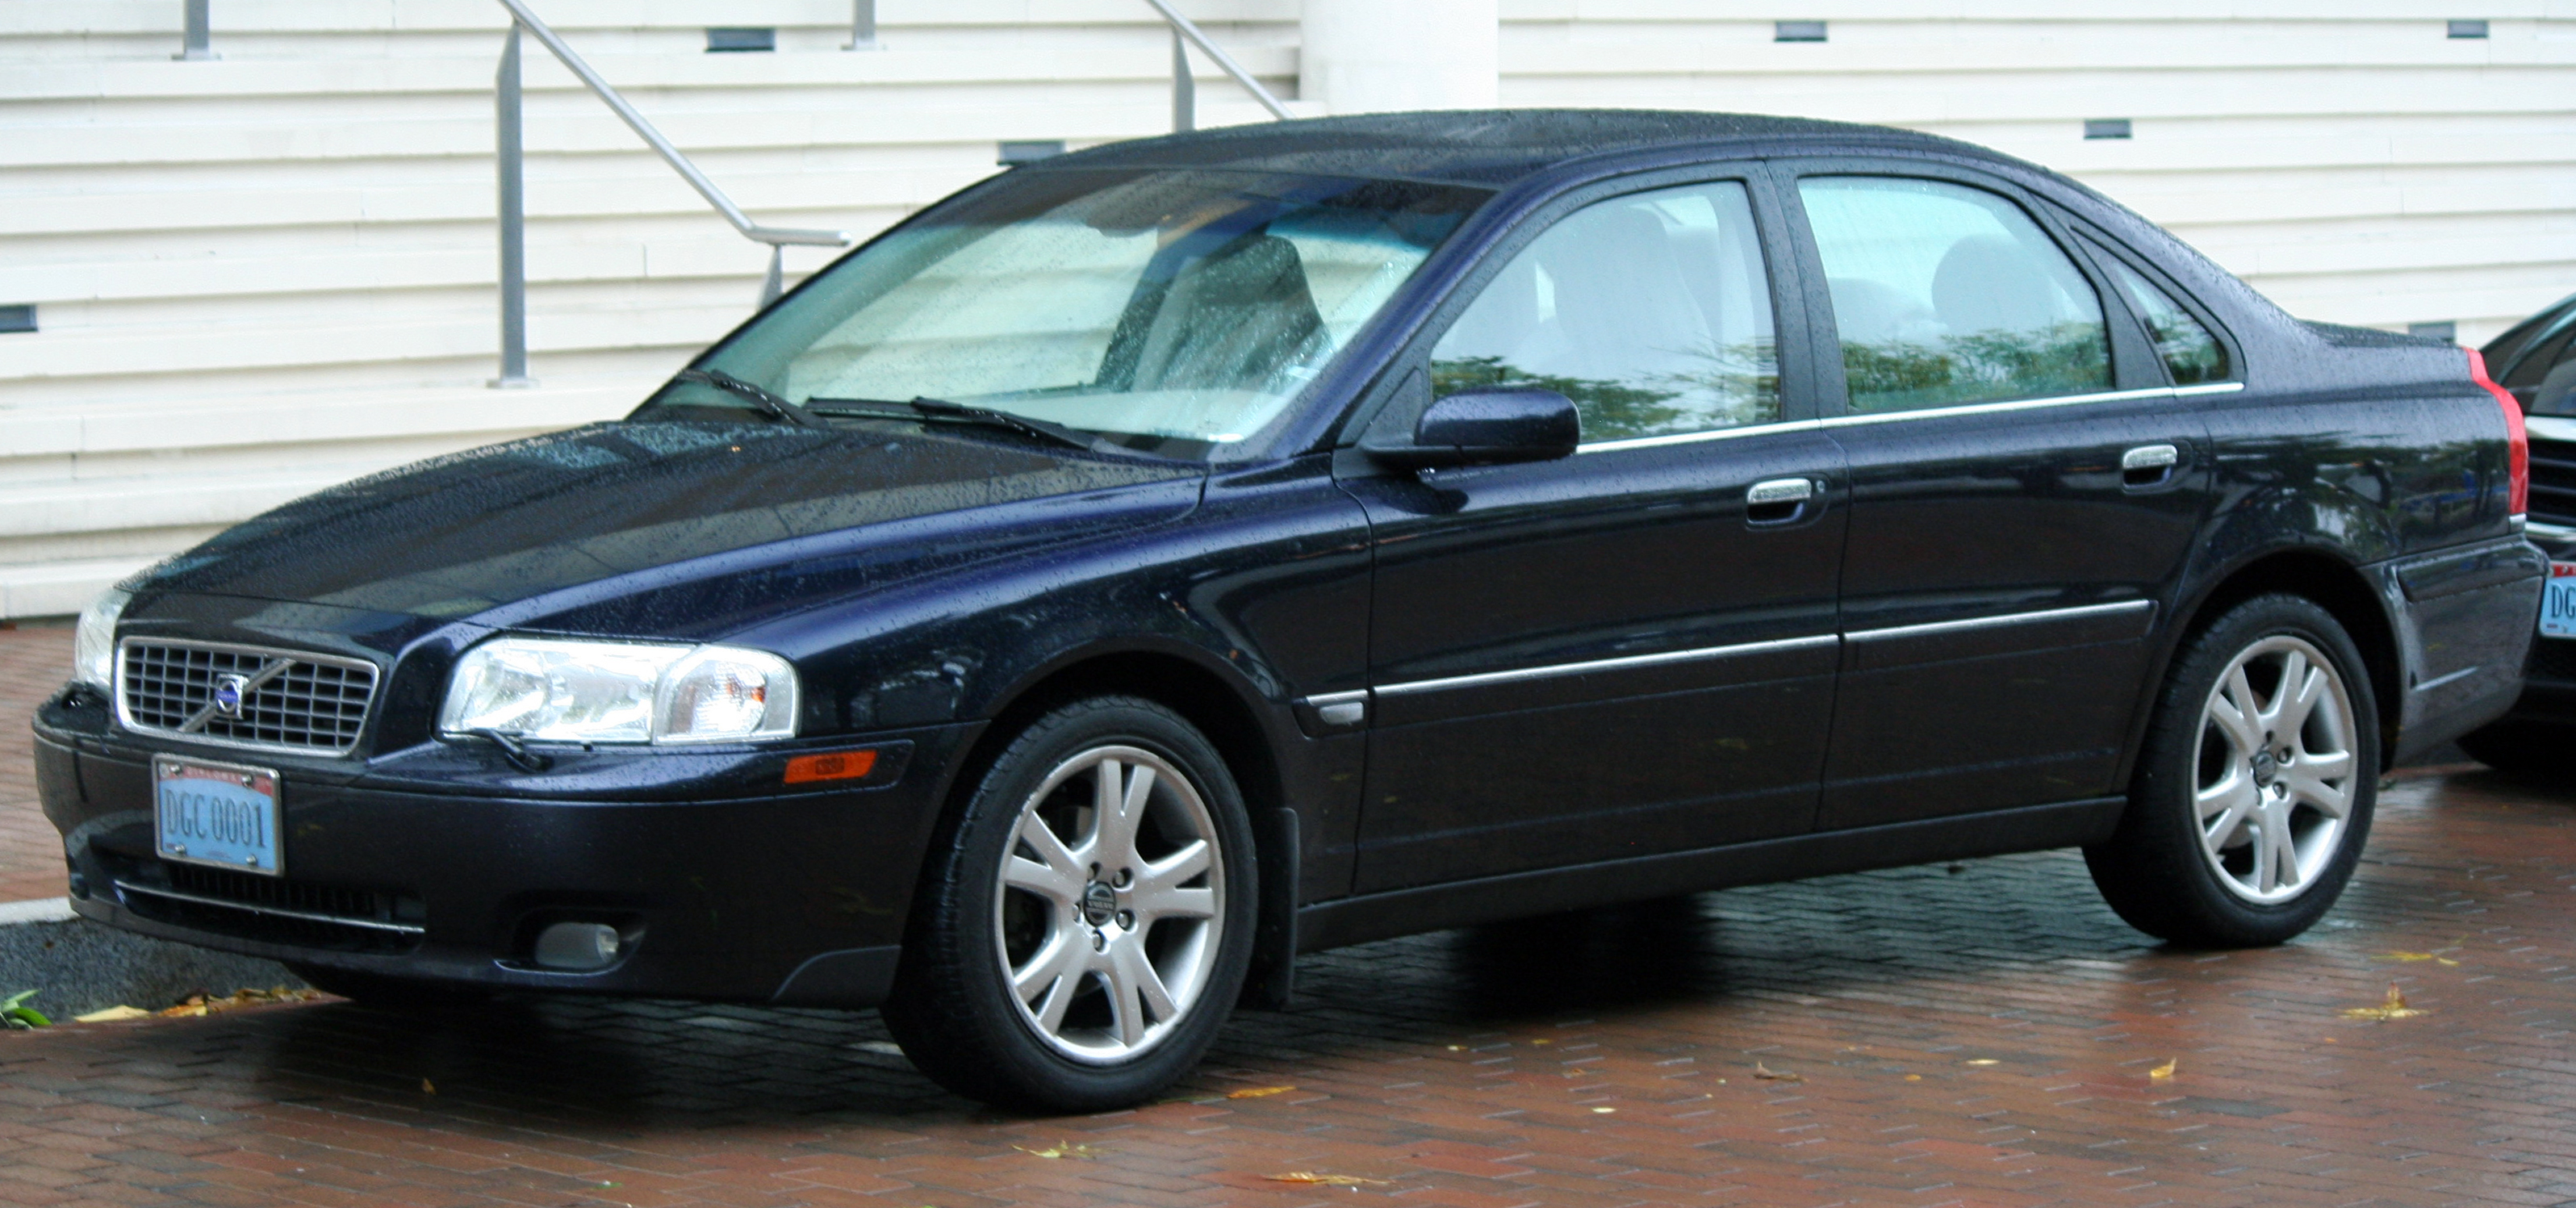 2005 Volvo S80 – pictures, information and specs - Auto-Database.com